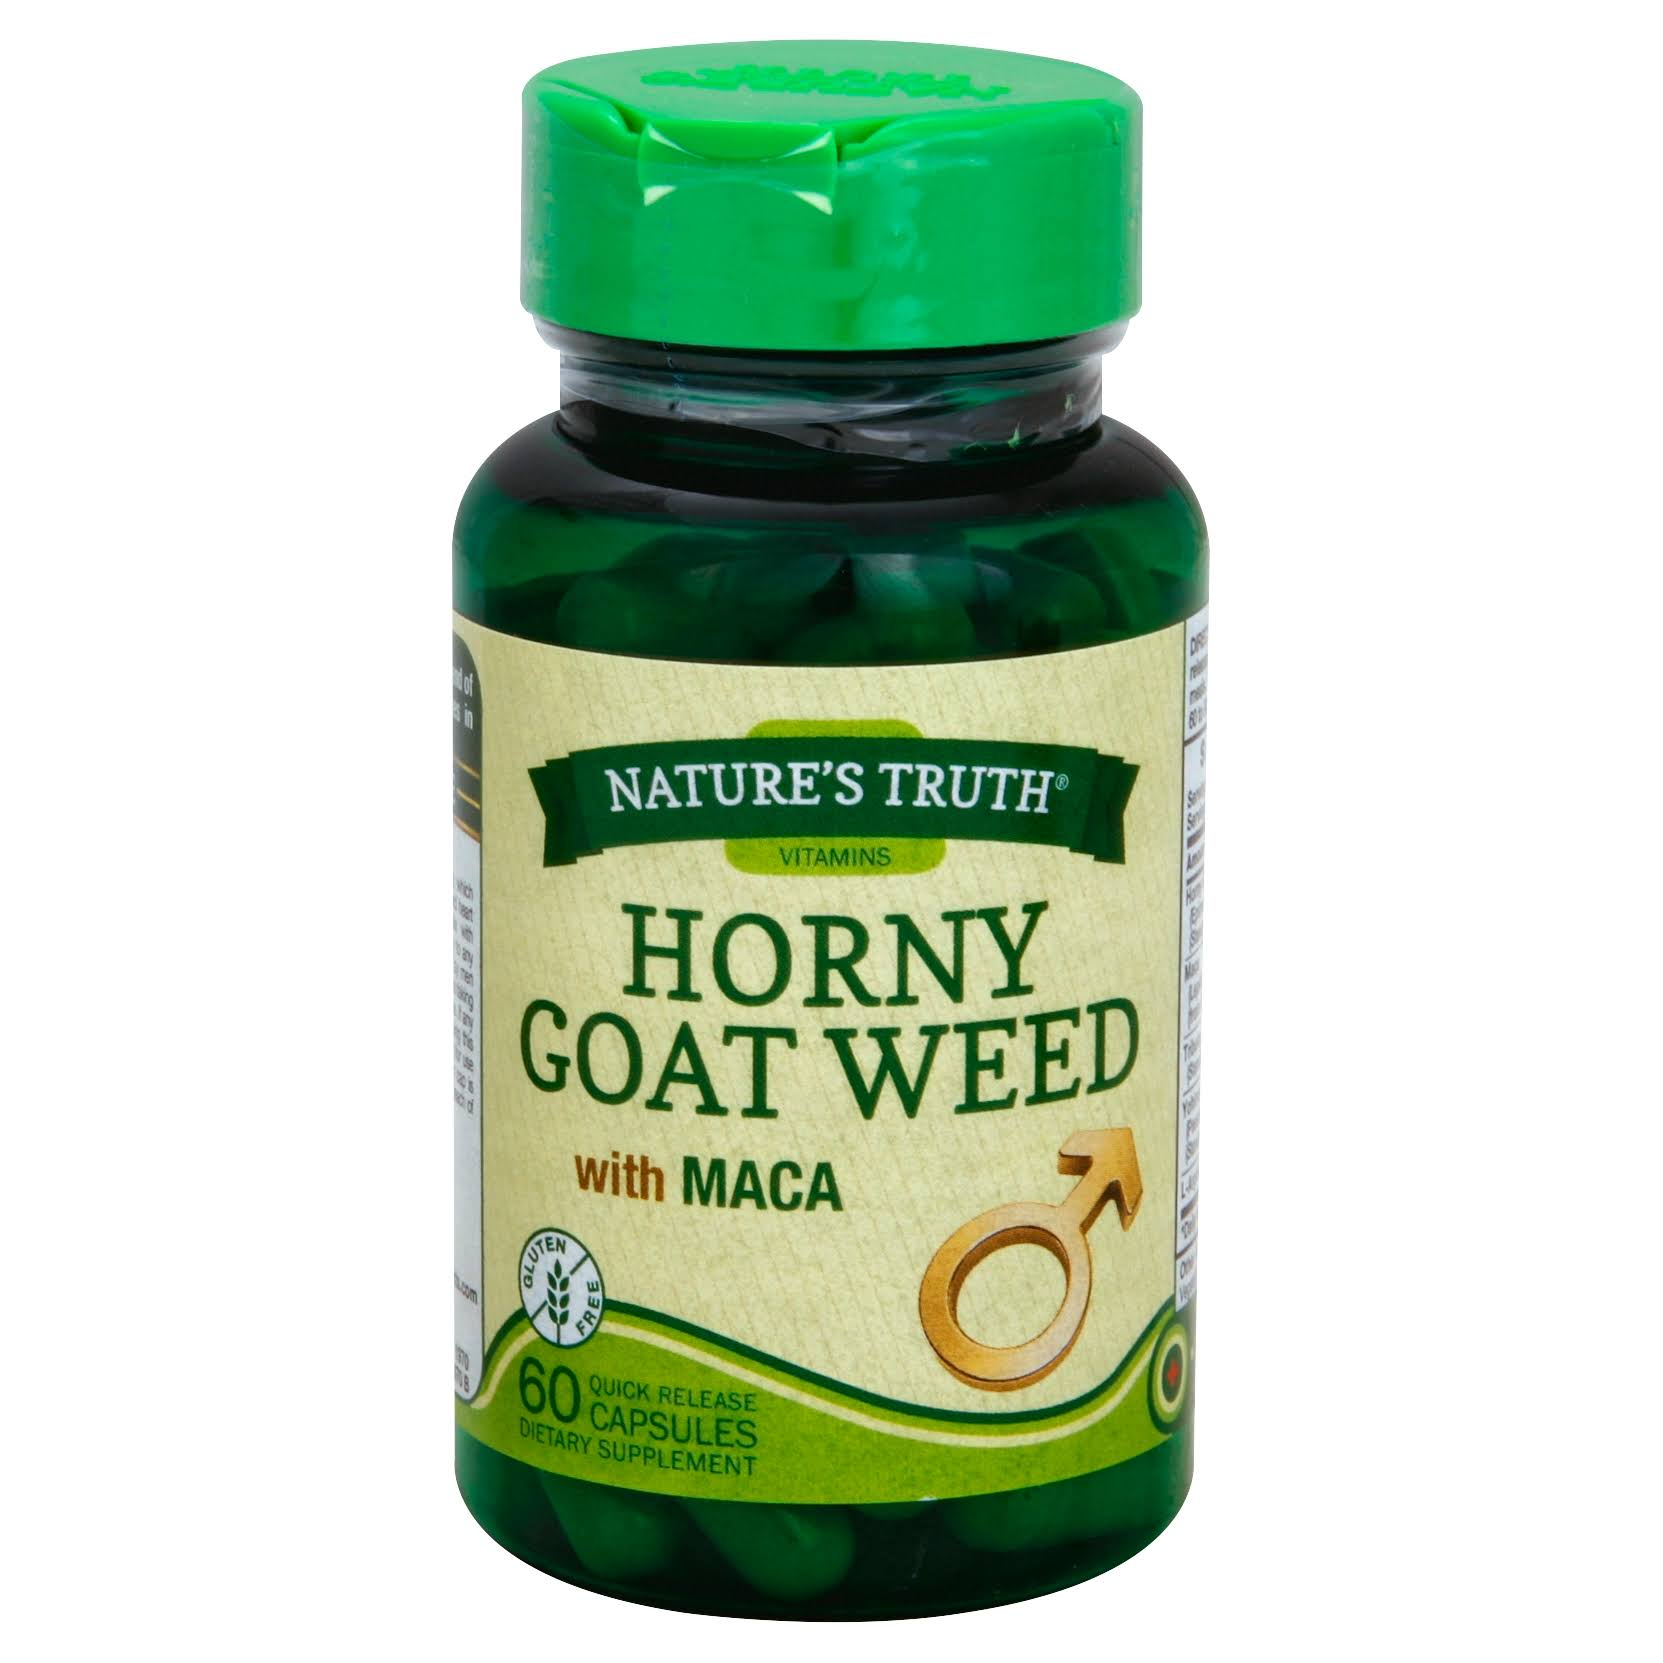 Natures Truth Horny Goat Weed Dietary Supplement - 60ct